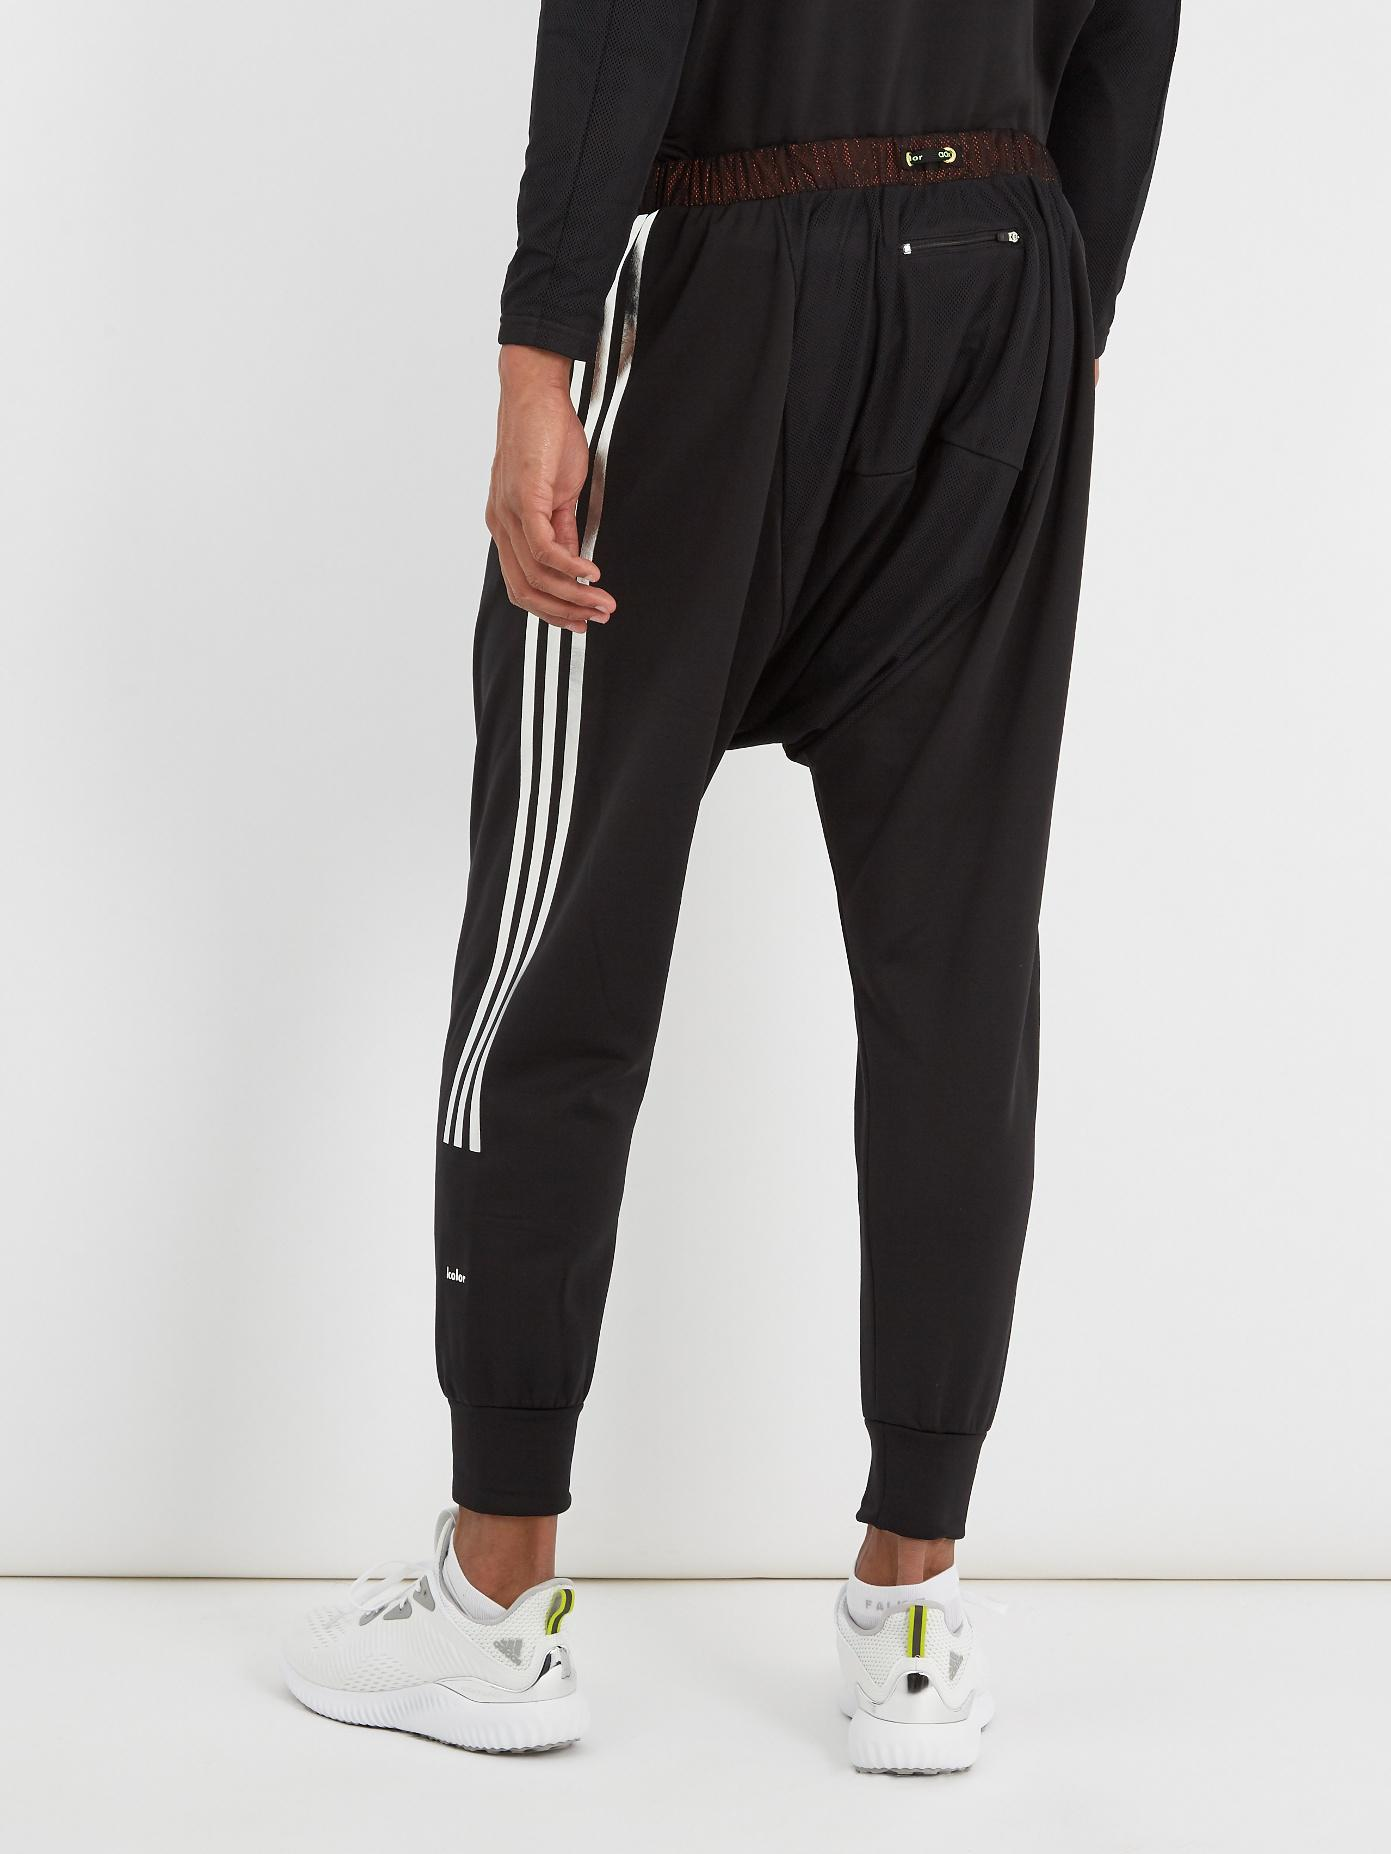 adidas Originals Synthetic Hybrid Jersey Performance Track Pants in Black for Men